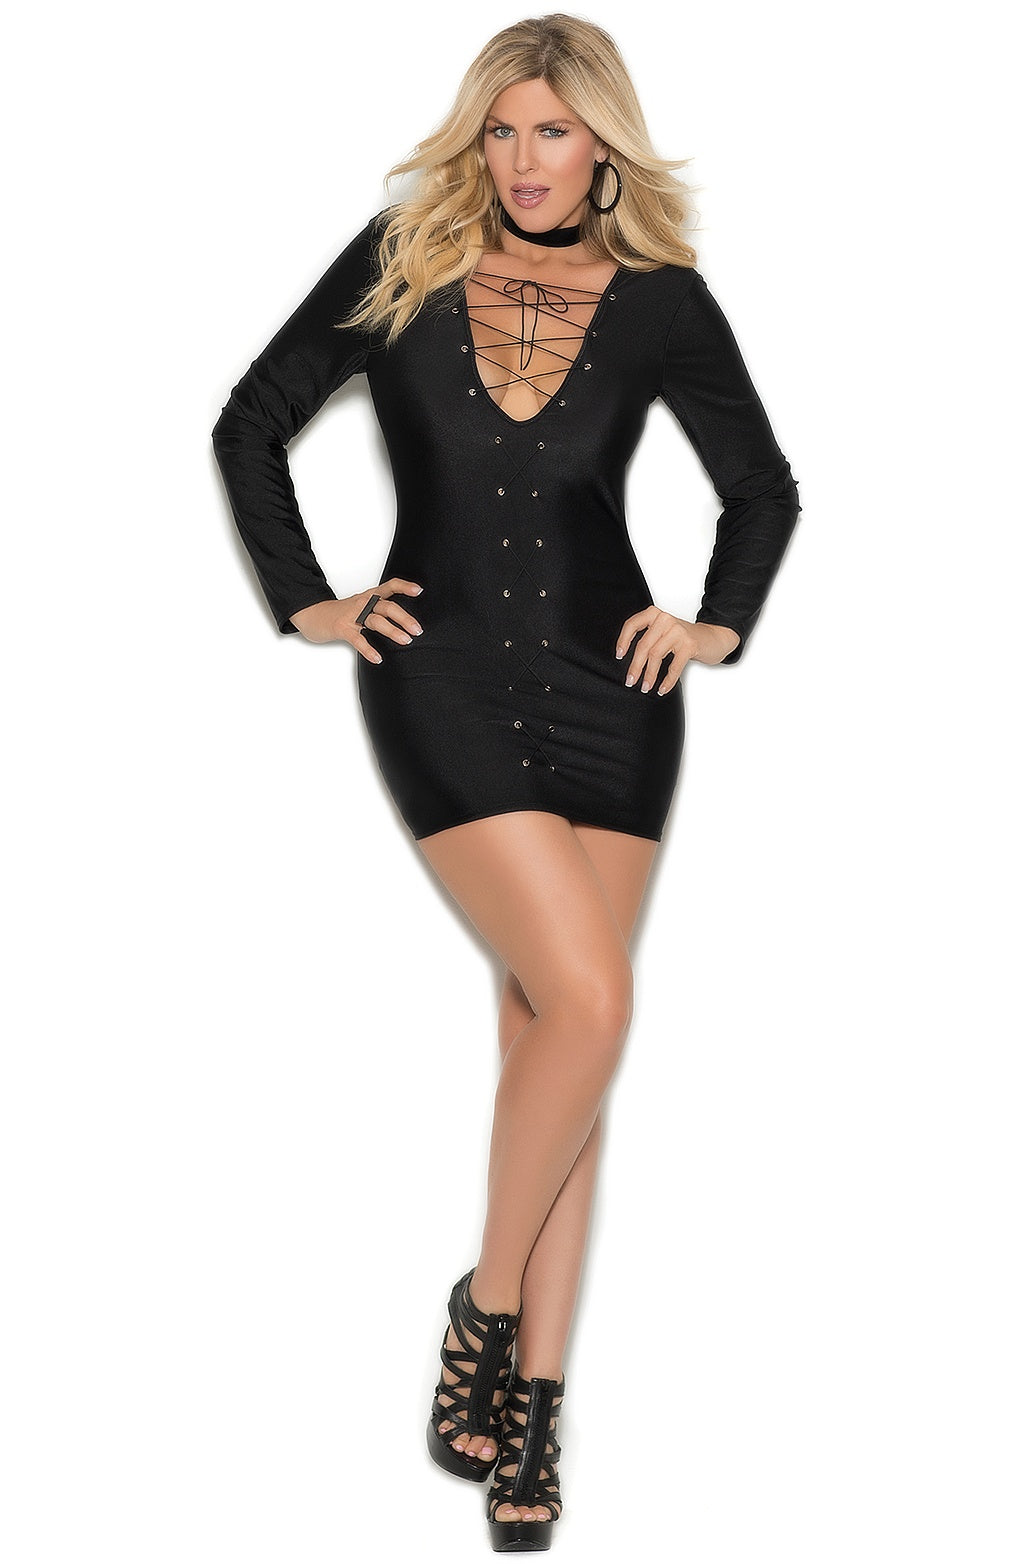 EM-8357 Black long sleeve dress